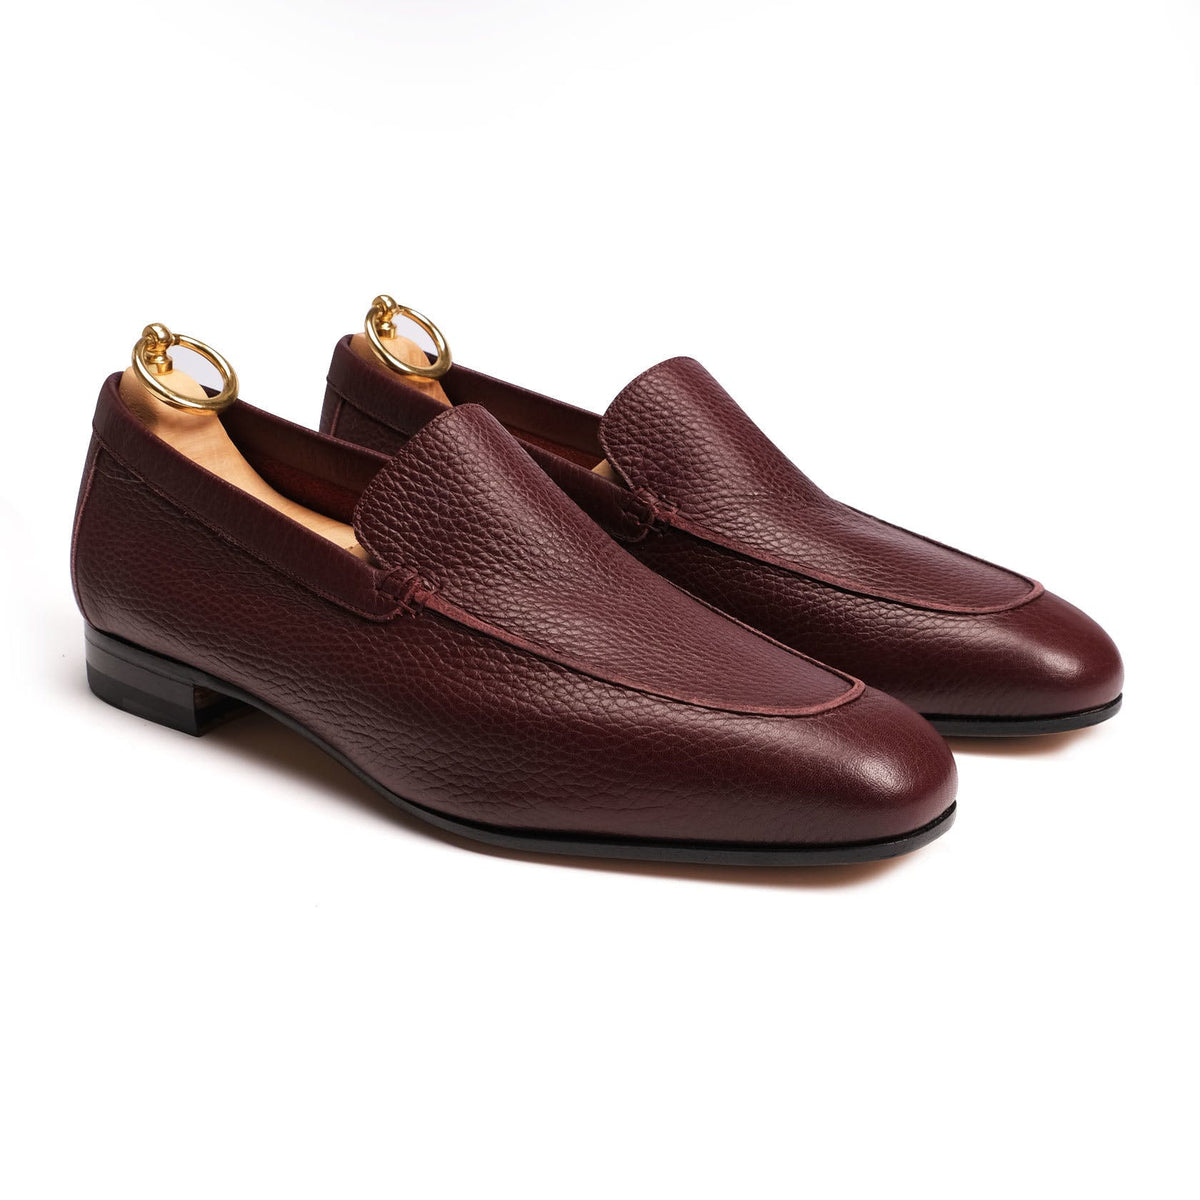 Rivolta loafer unlined plain - Burgundy and Dark Brown Colors